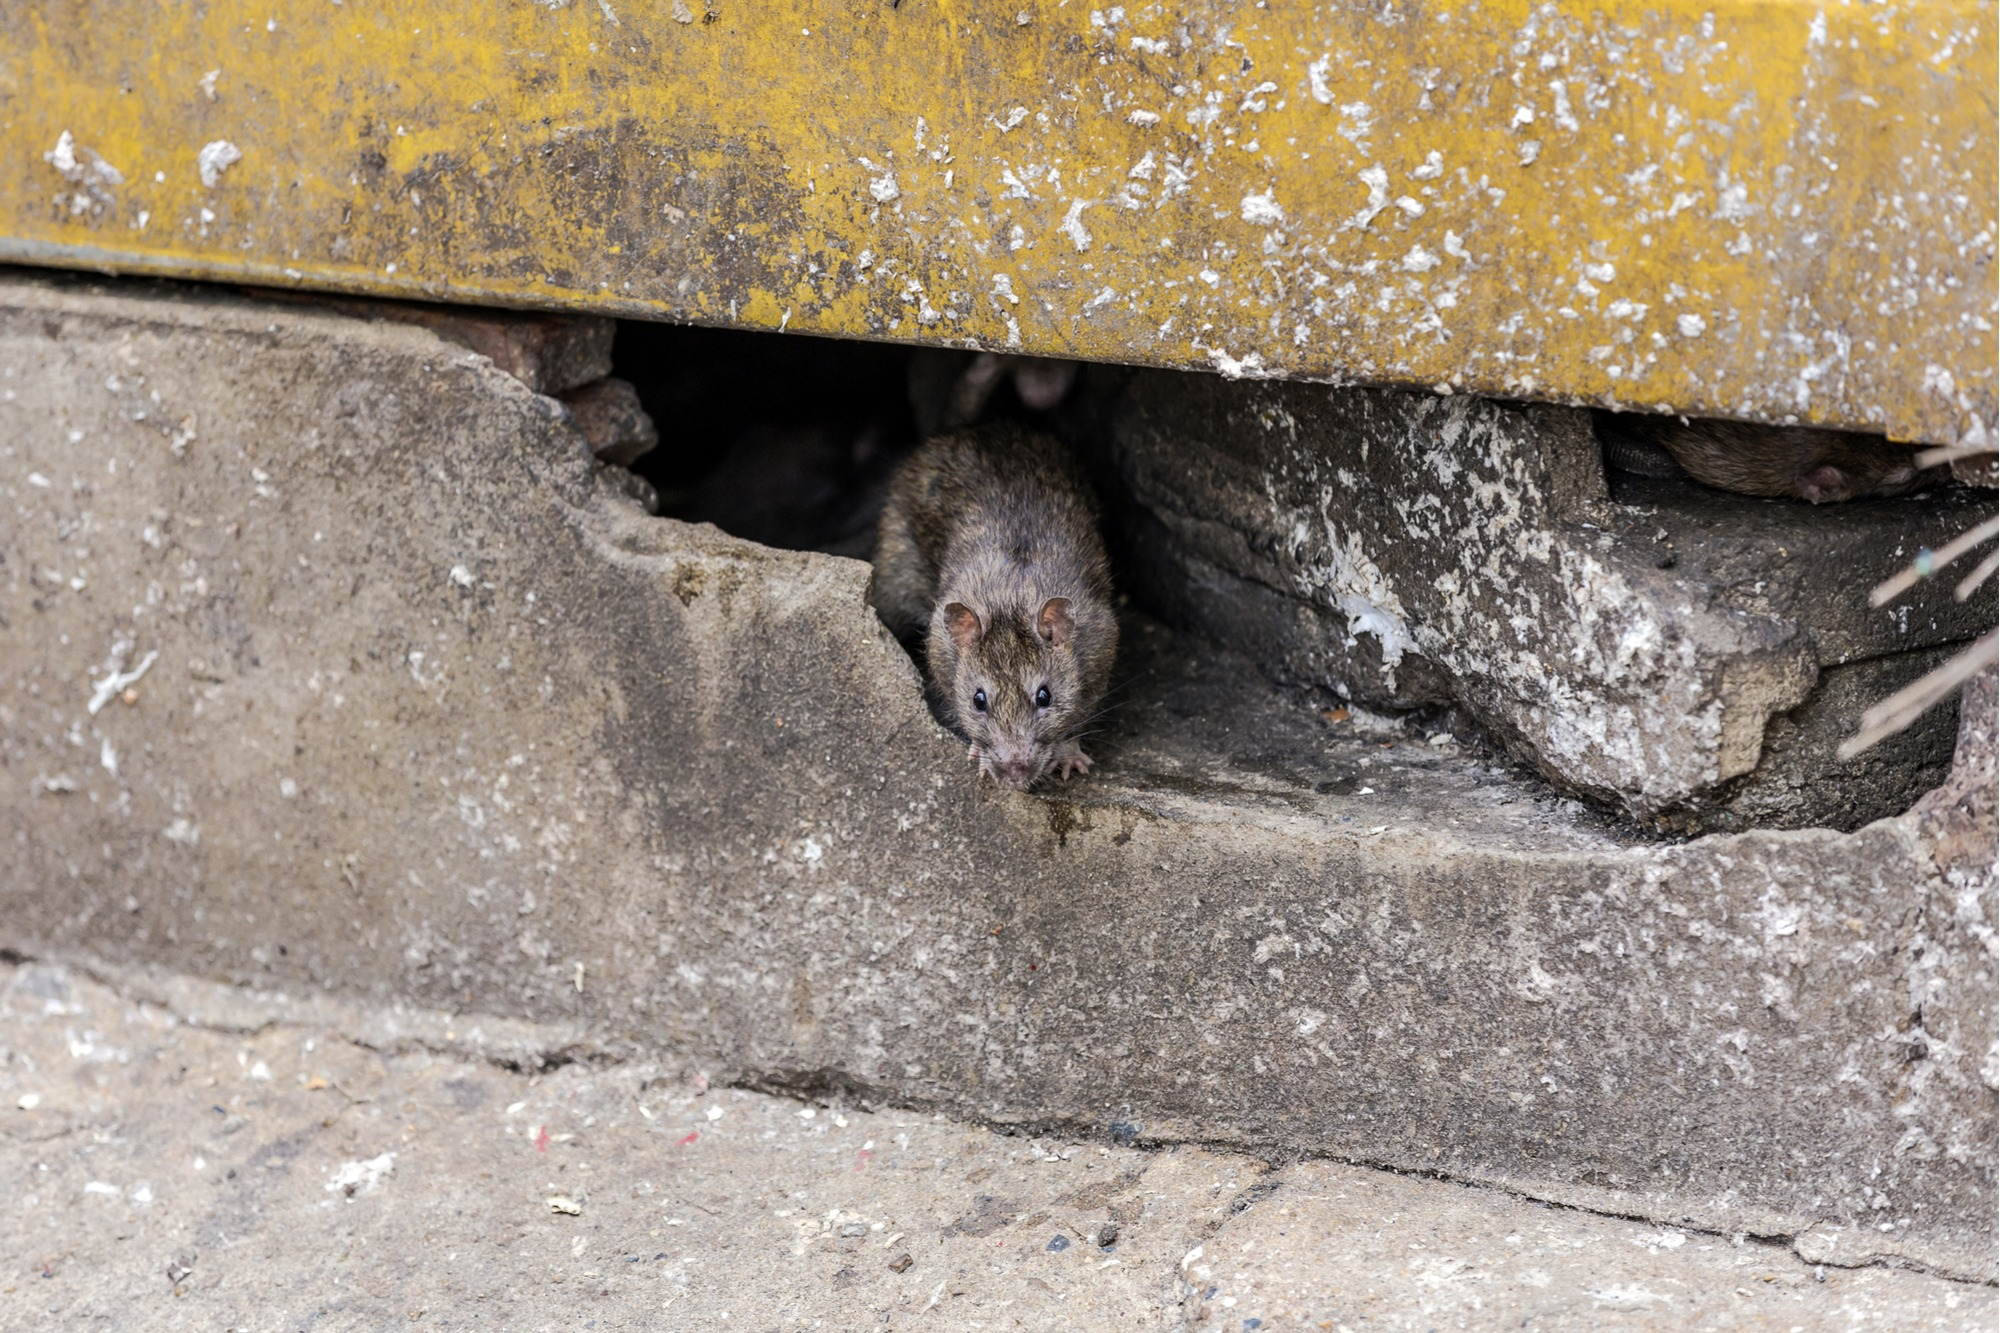 Rat Repellent. 3. Clean Your Yard. The Next Step In Removing ...